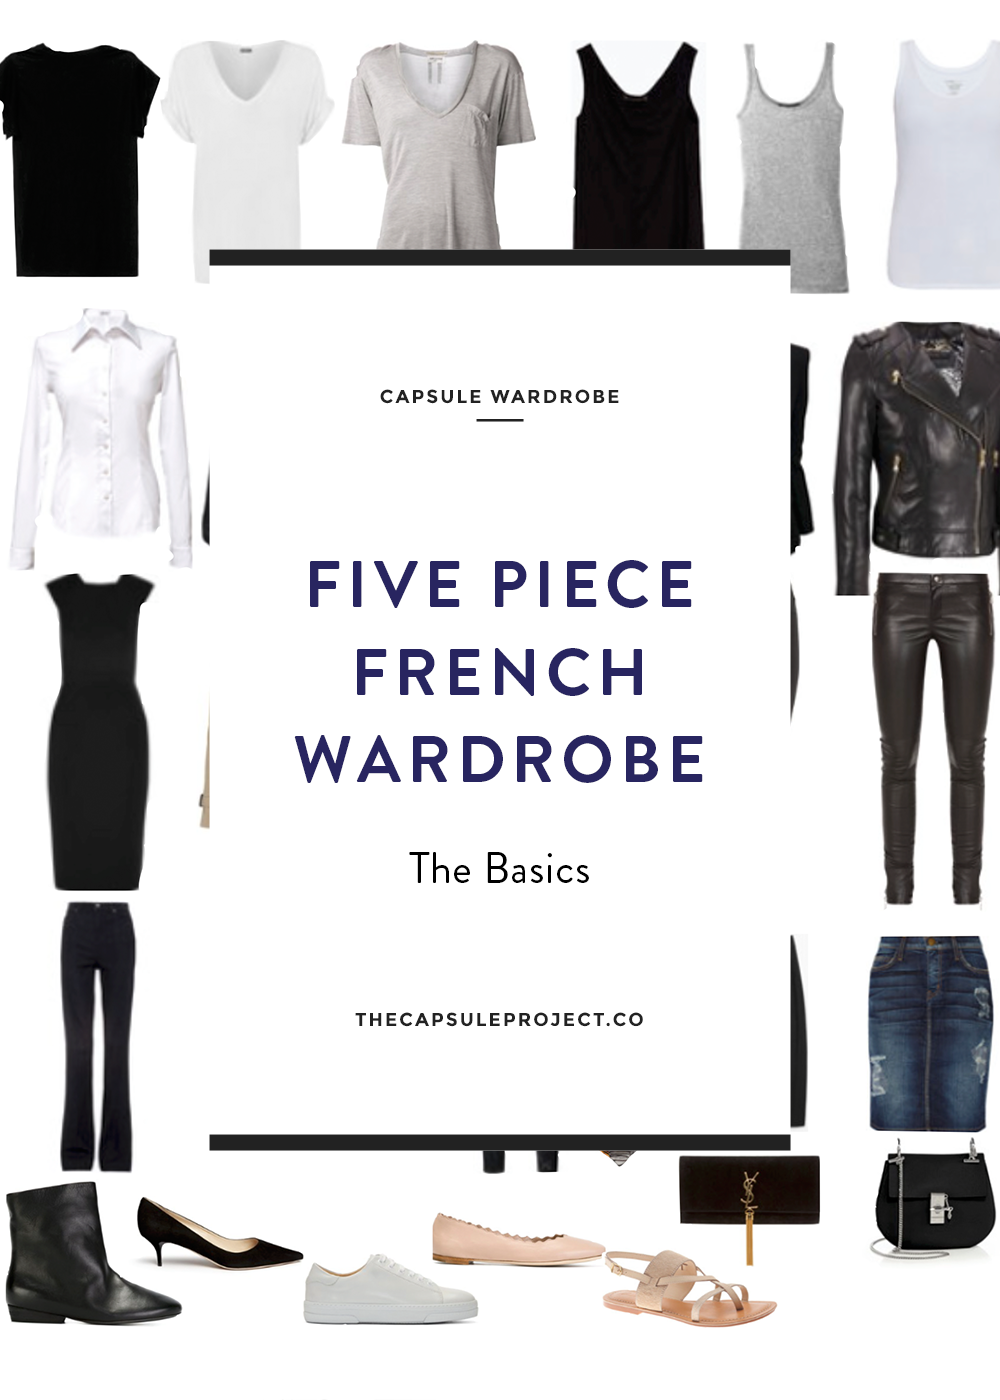 French Capsule: The Five Piece French Wardrobe